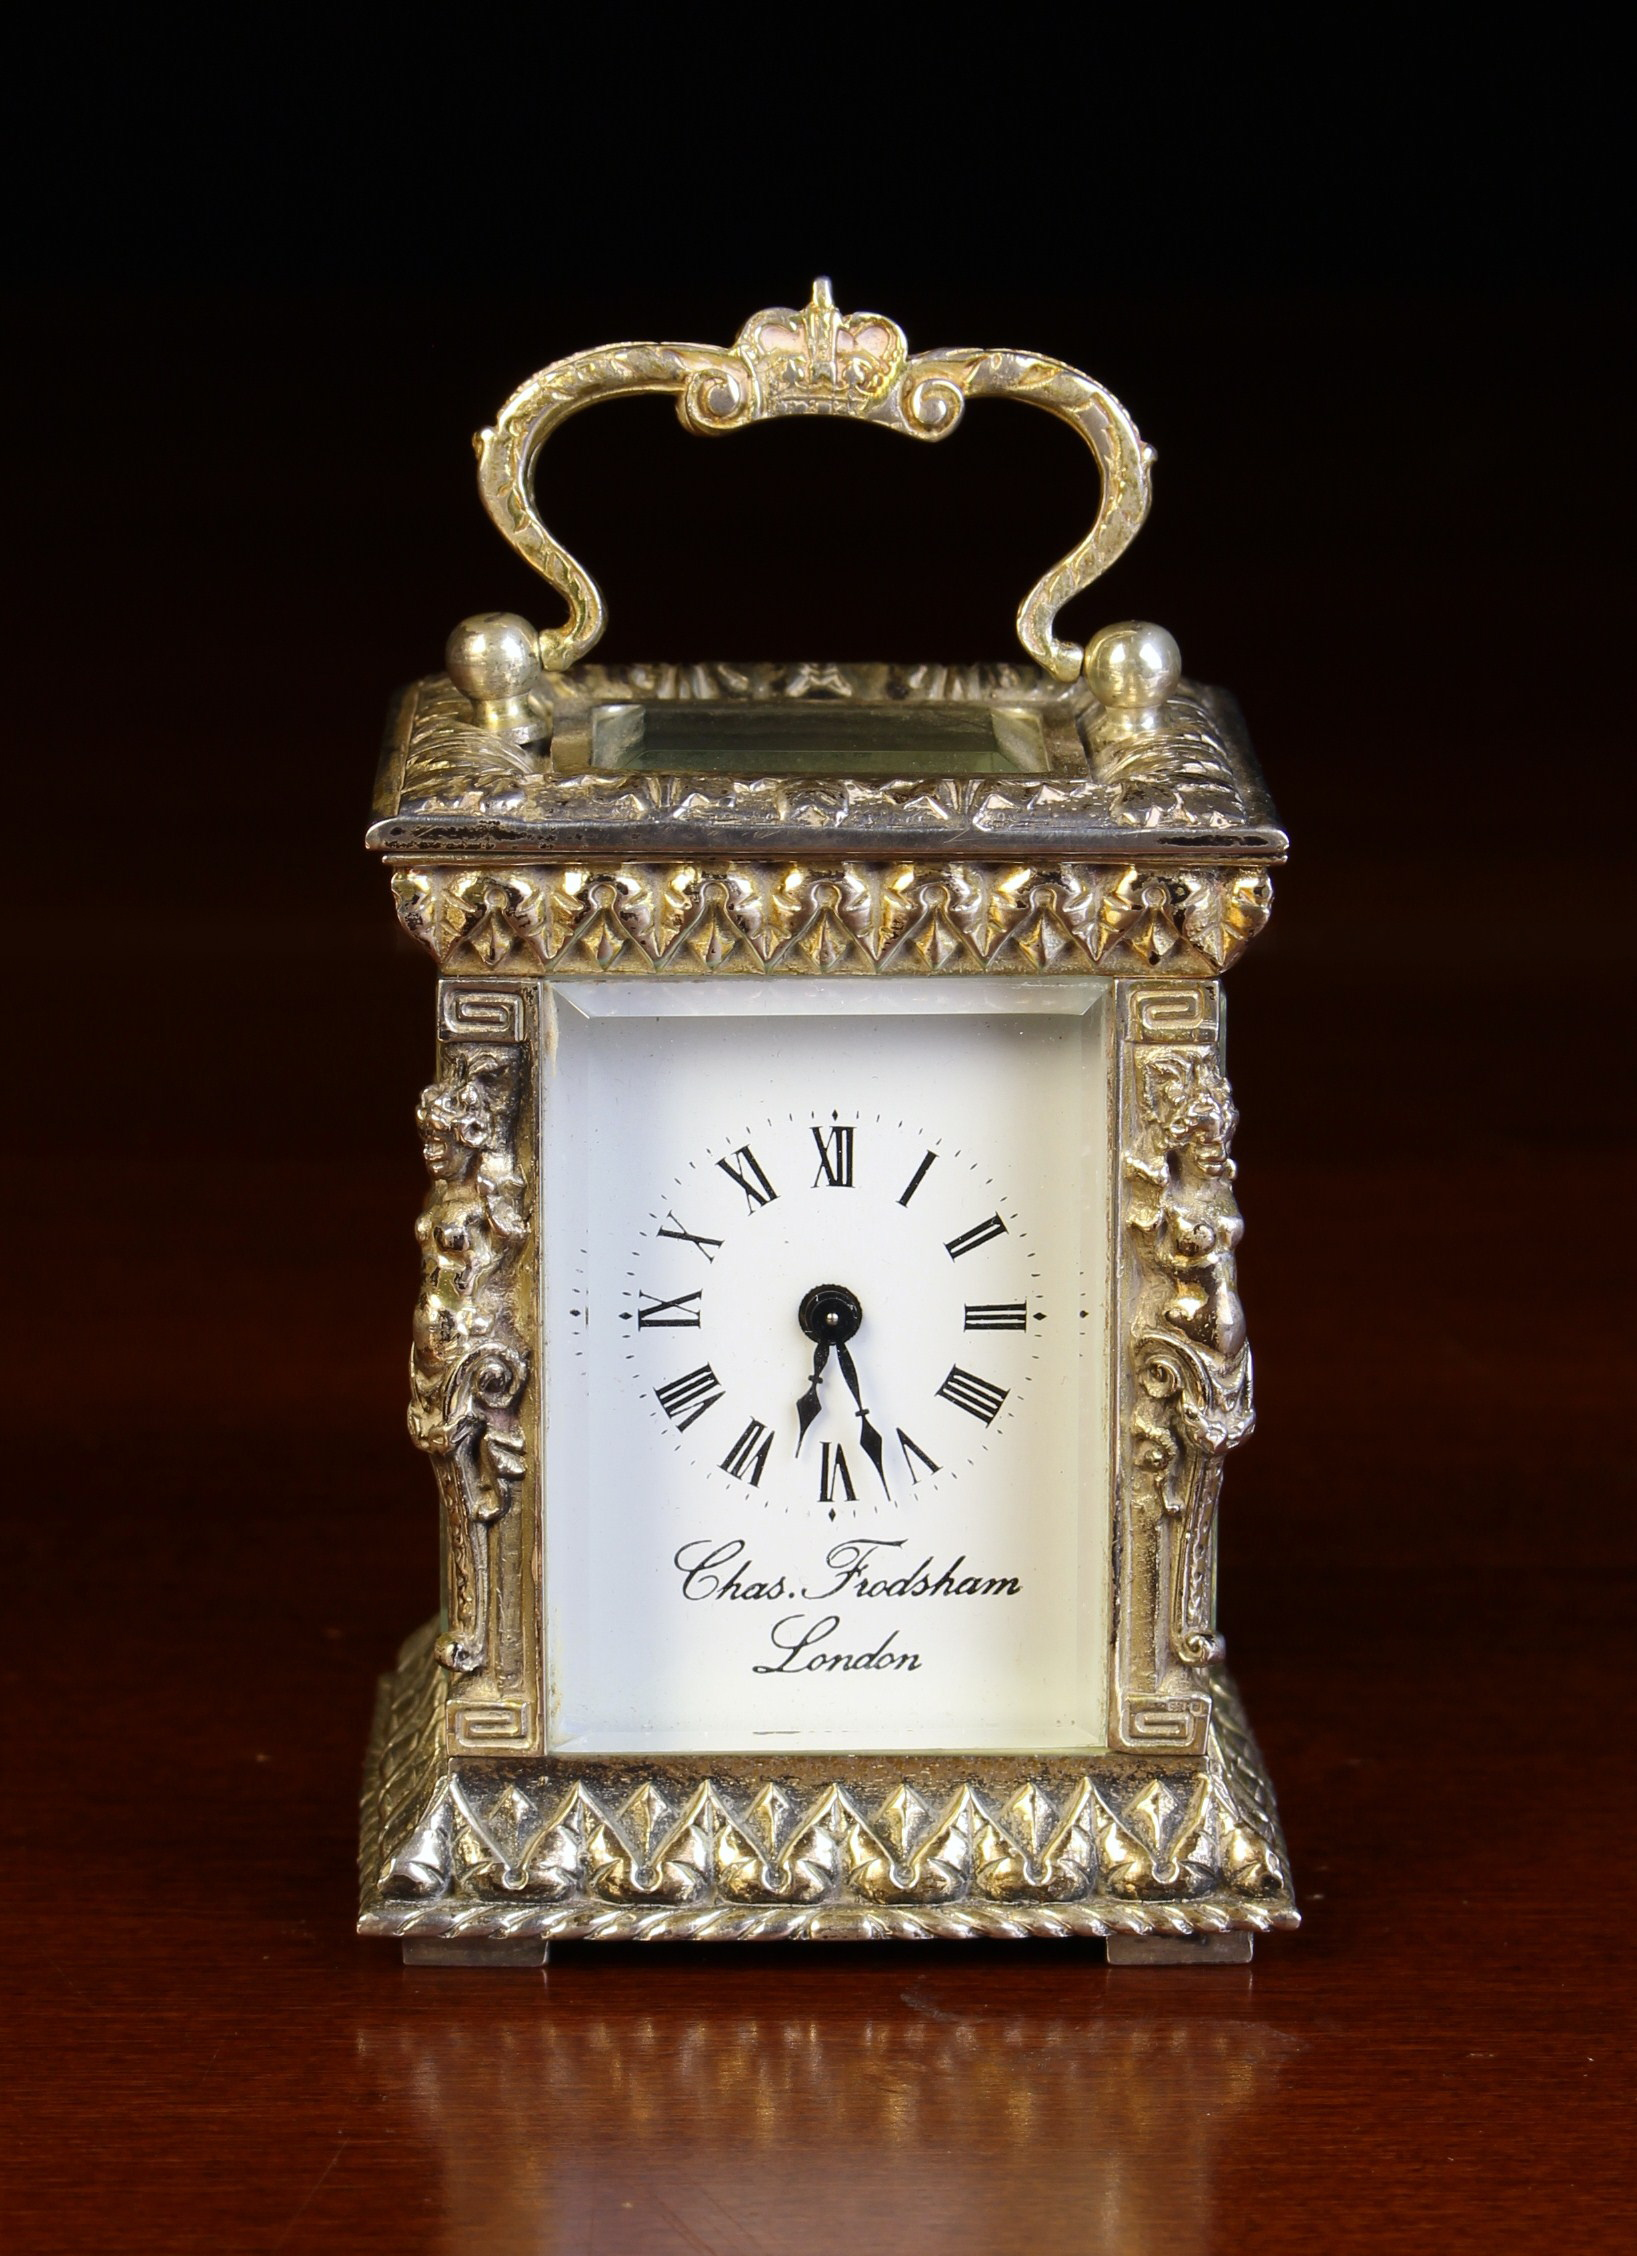 A Miniature Silver Cased Carriage Clock by Chas. Frodsham, London.